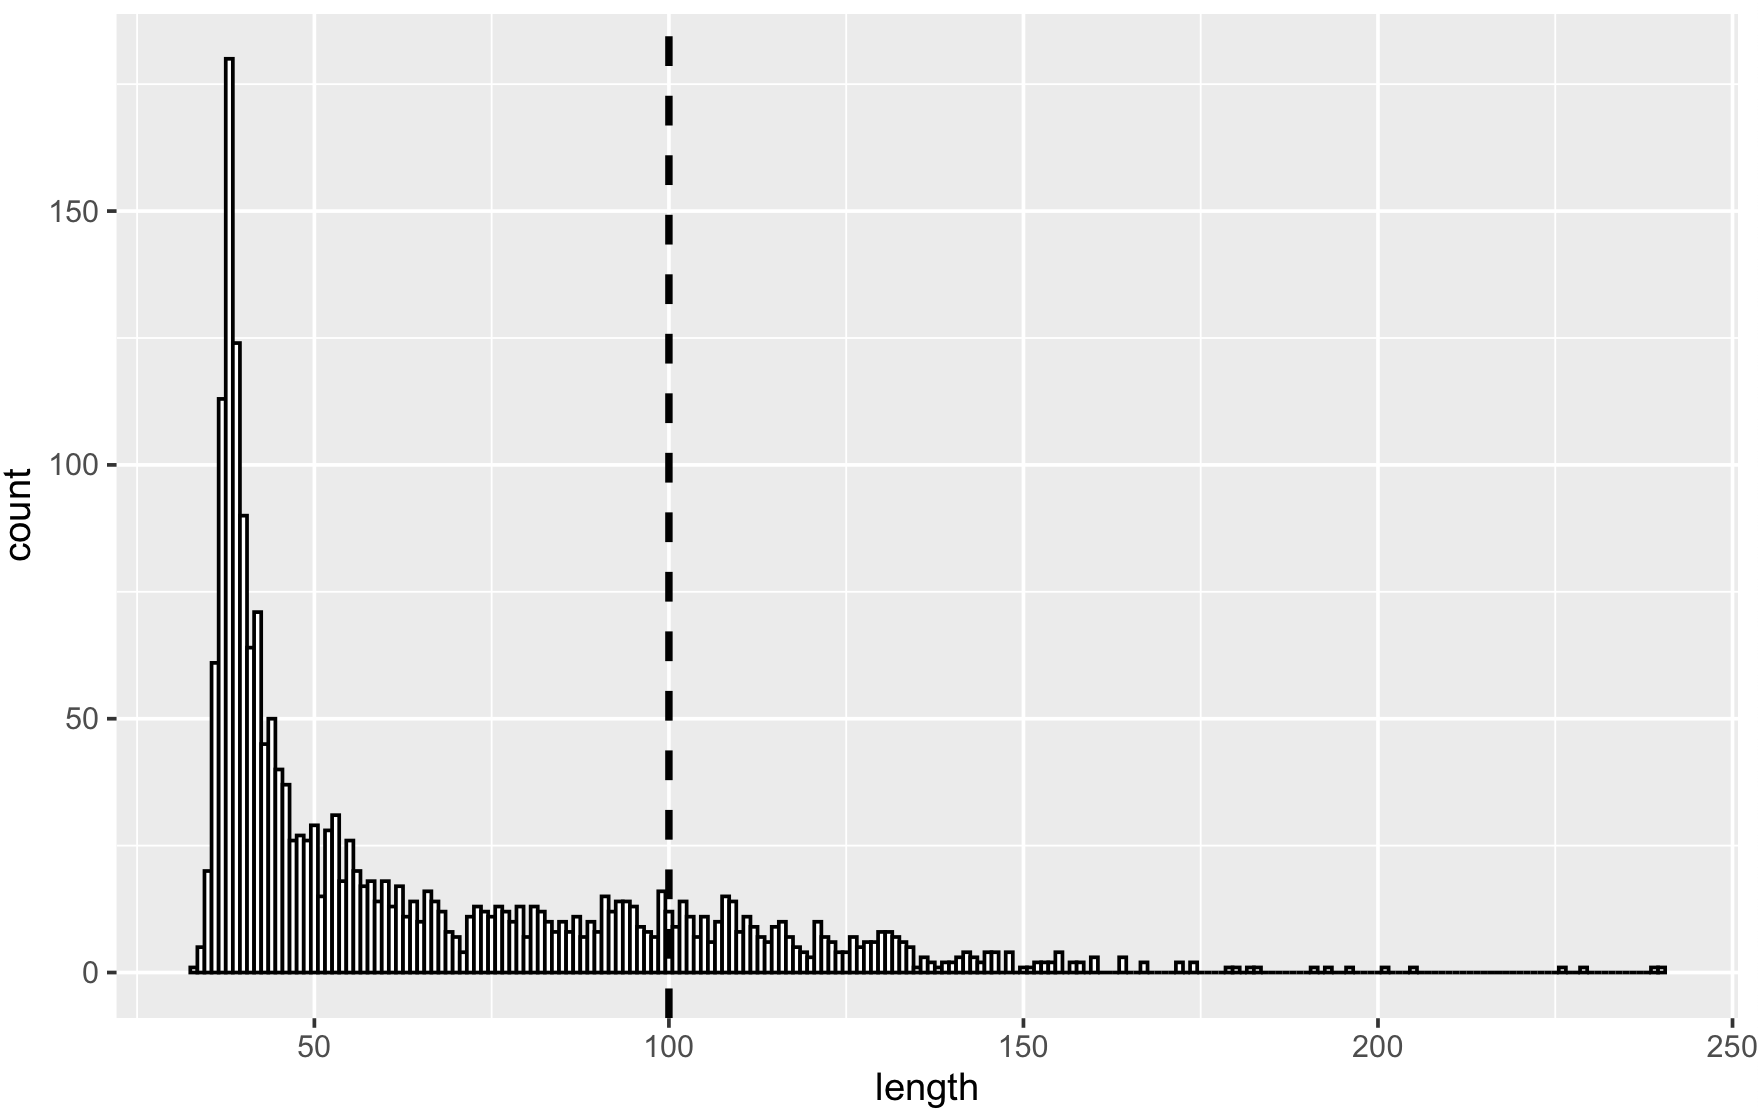 Histogram of links length